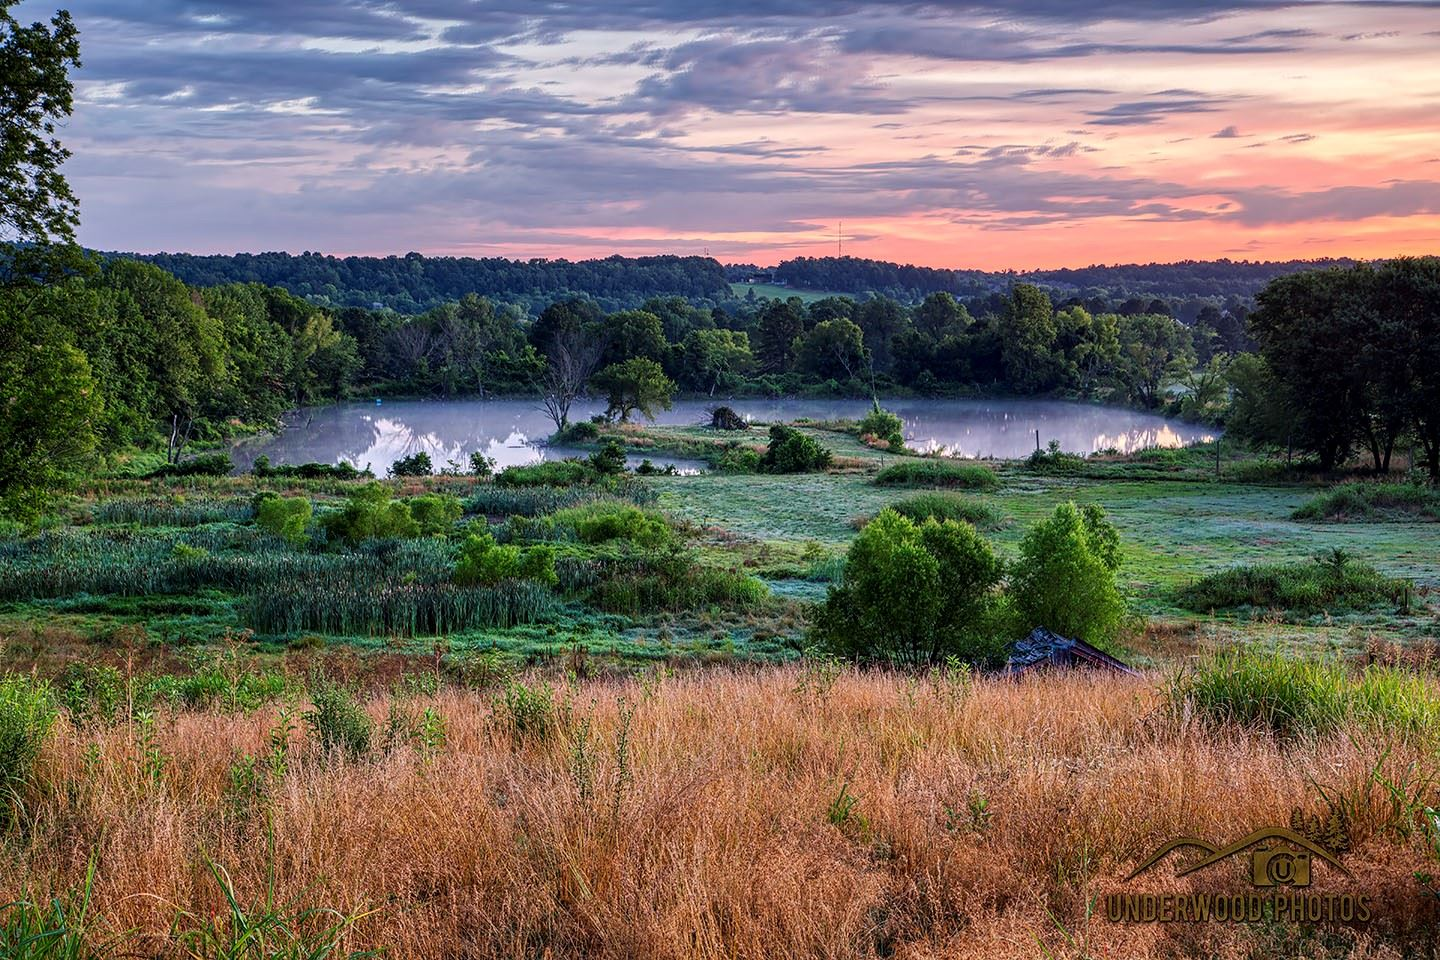 Image of pond and parkland at sunset. Land donated for future Underwood Park